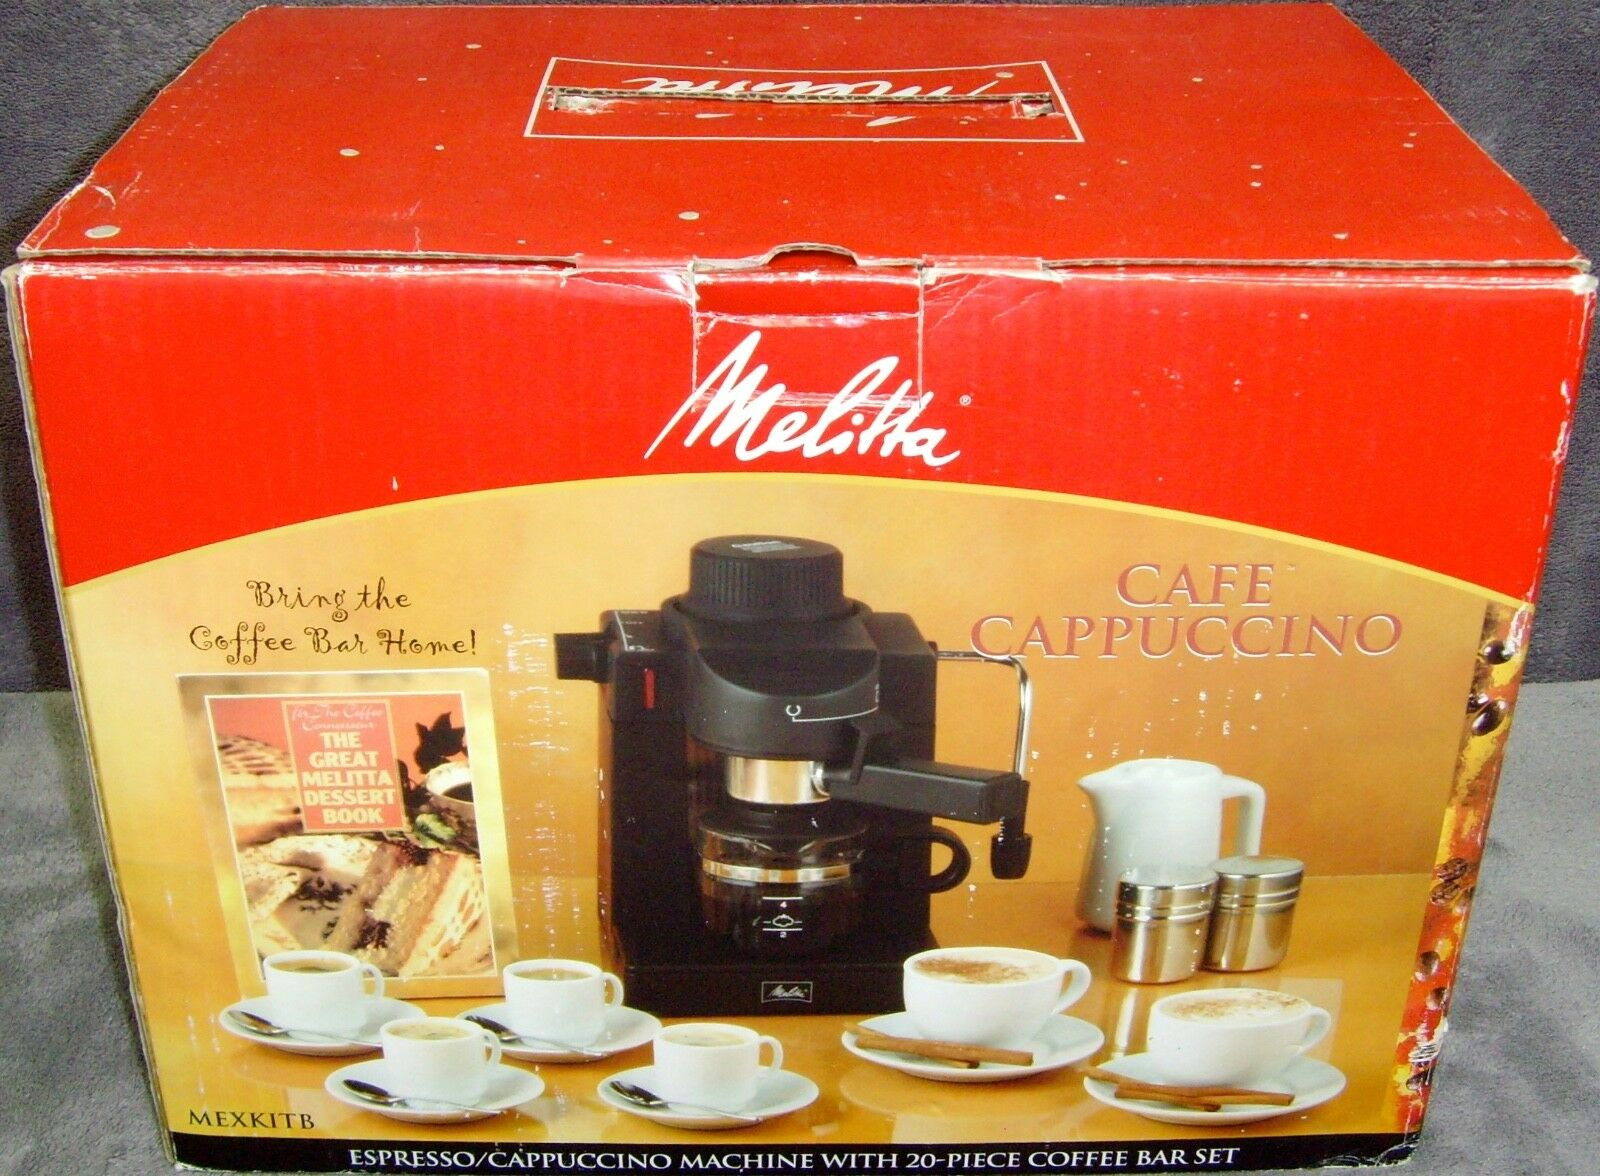 new in boxespresso cappuccino machinemexkitbw 20 piece